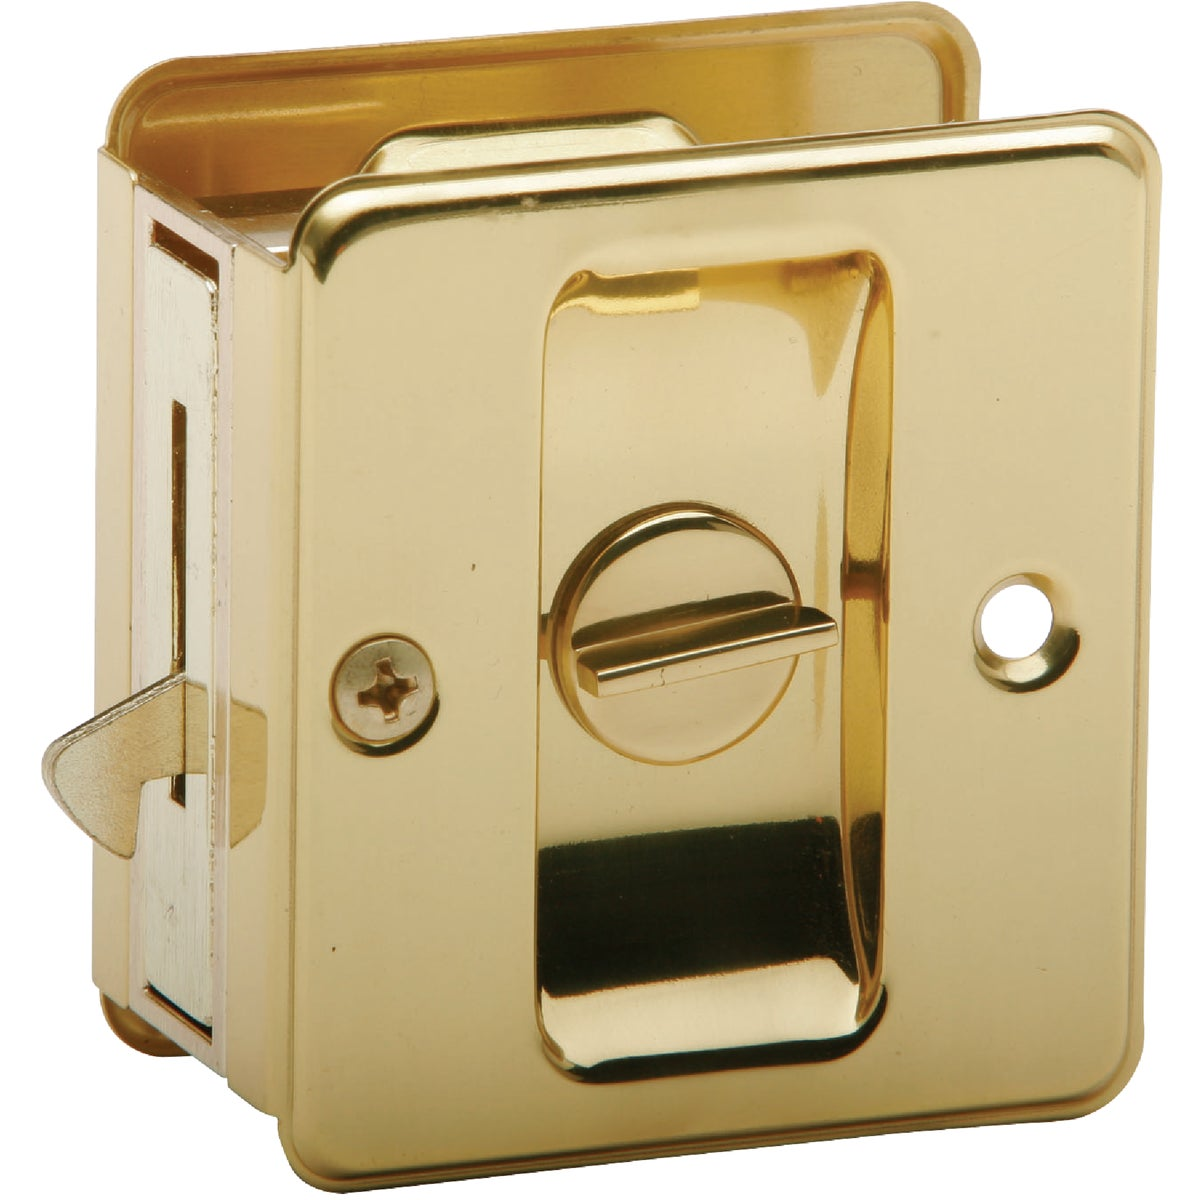 PB PRIV POCKET DOOR PULL - SC991B-605 by Schlage Lock Co